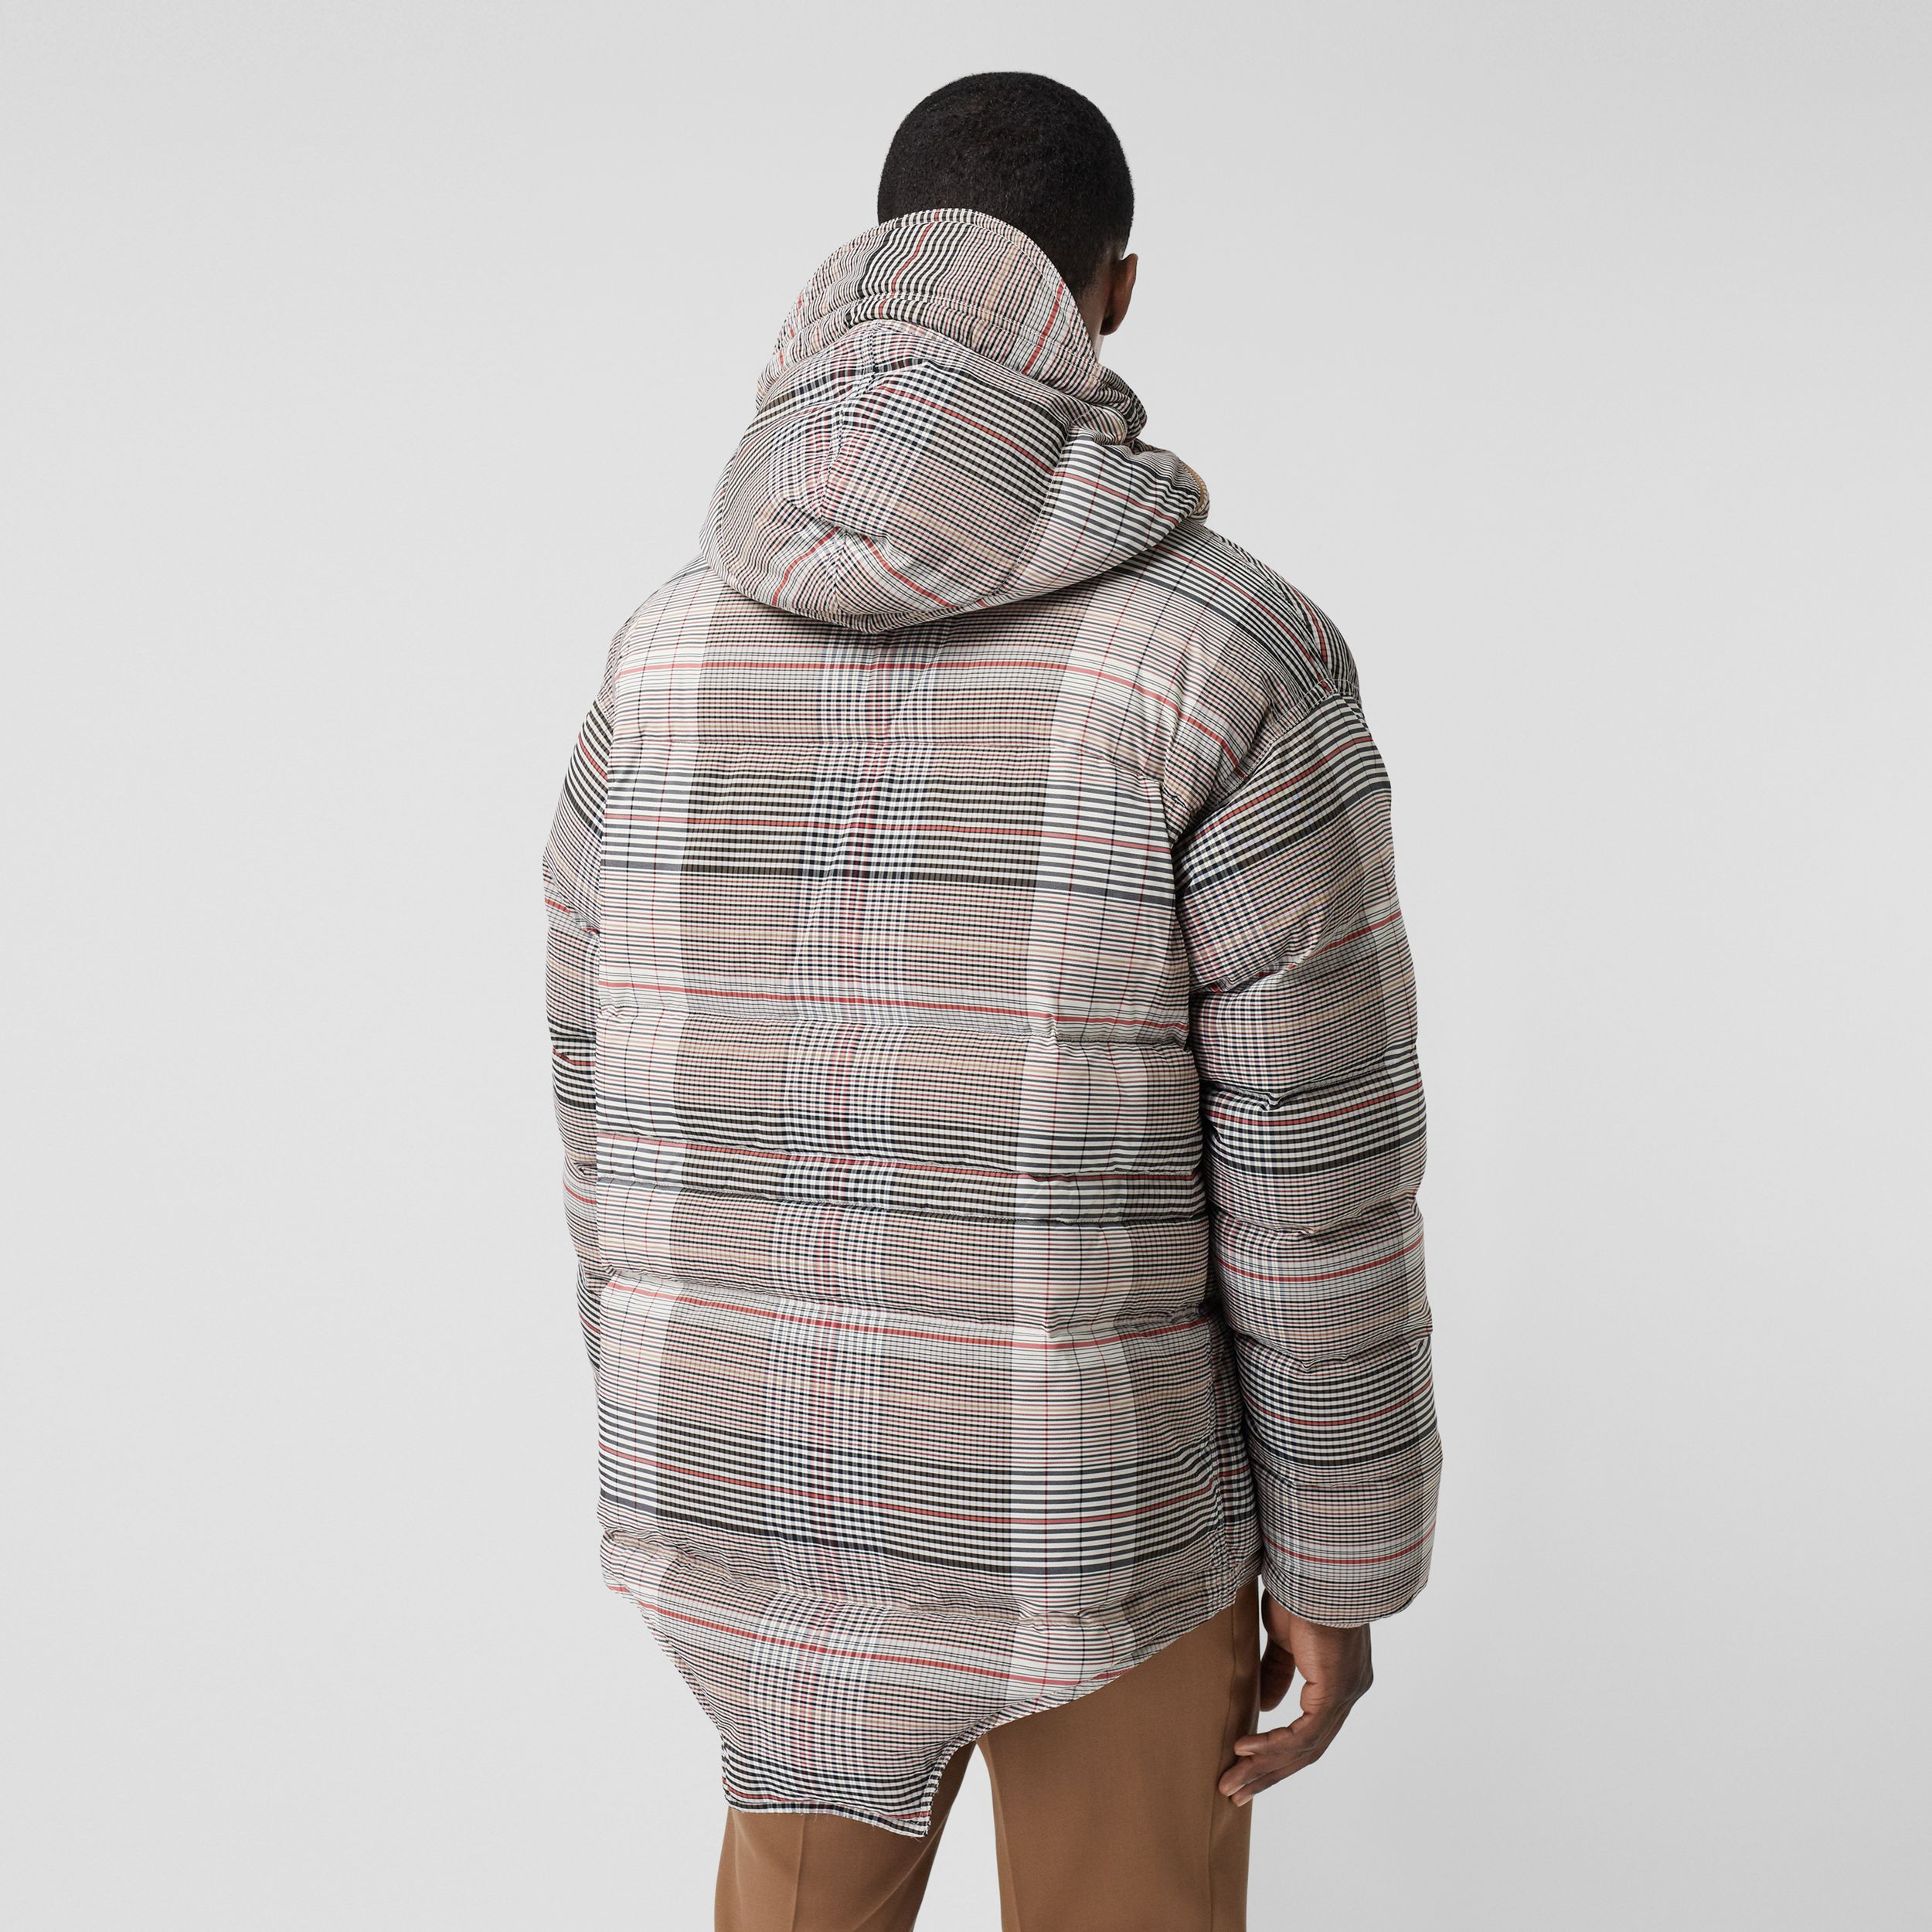 Cut-out Hem Check Nylon Twill Puffer Jacket in Beige | Burberry - 3